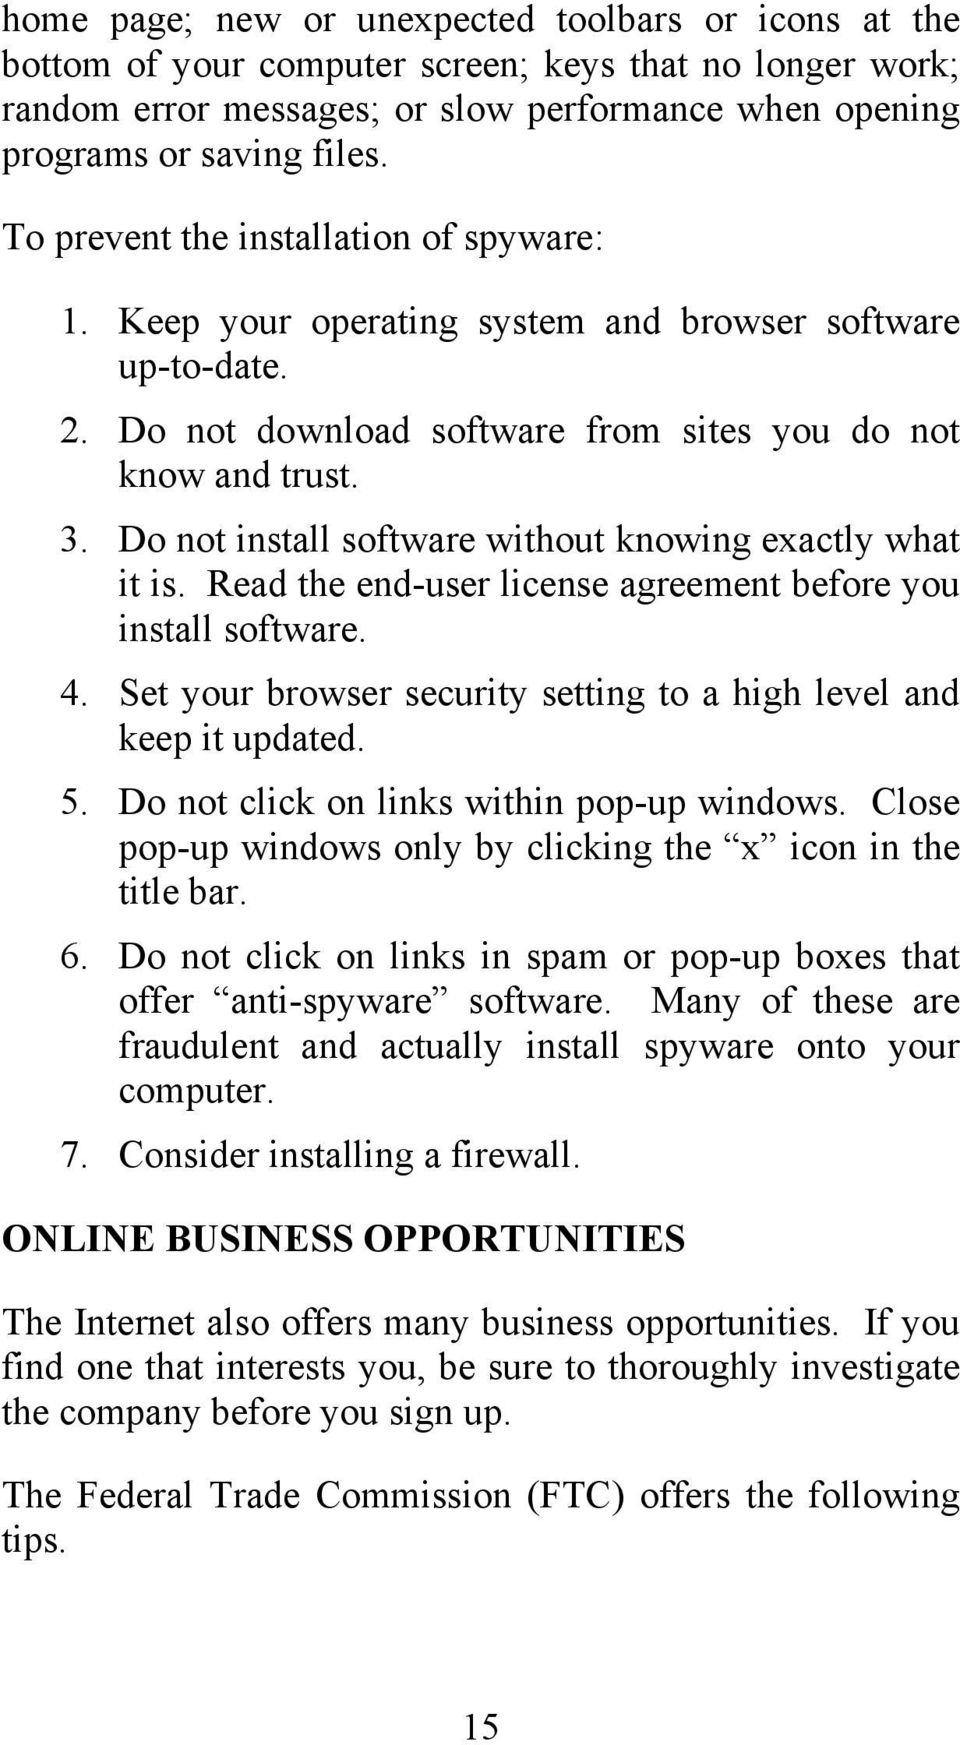 Do not install software without knowing exactly what it is. Read the end-user license agreement before you install software. 4. Set your browser security setting to a high level and keep it updated.